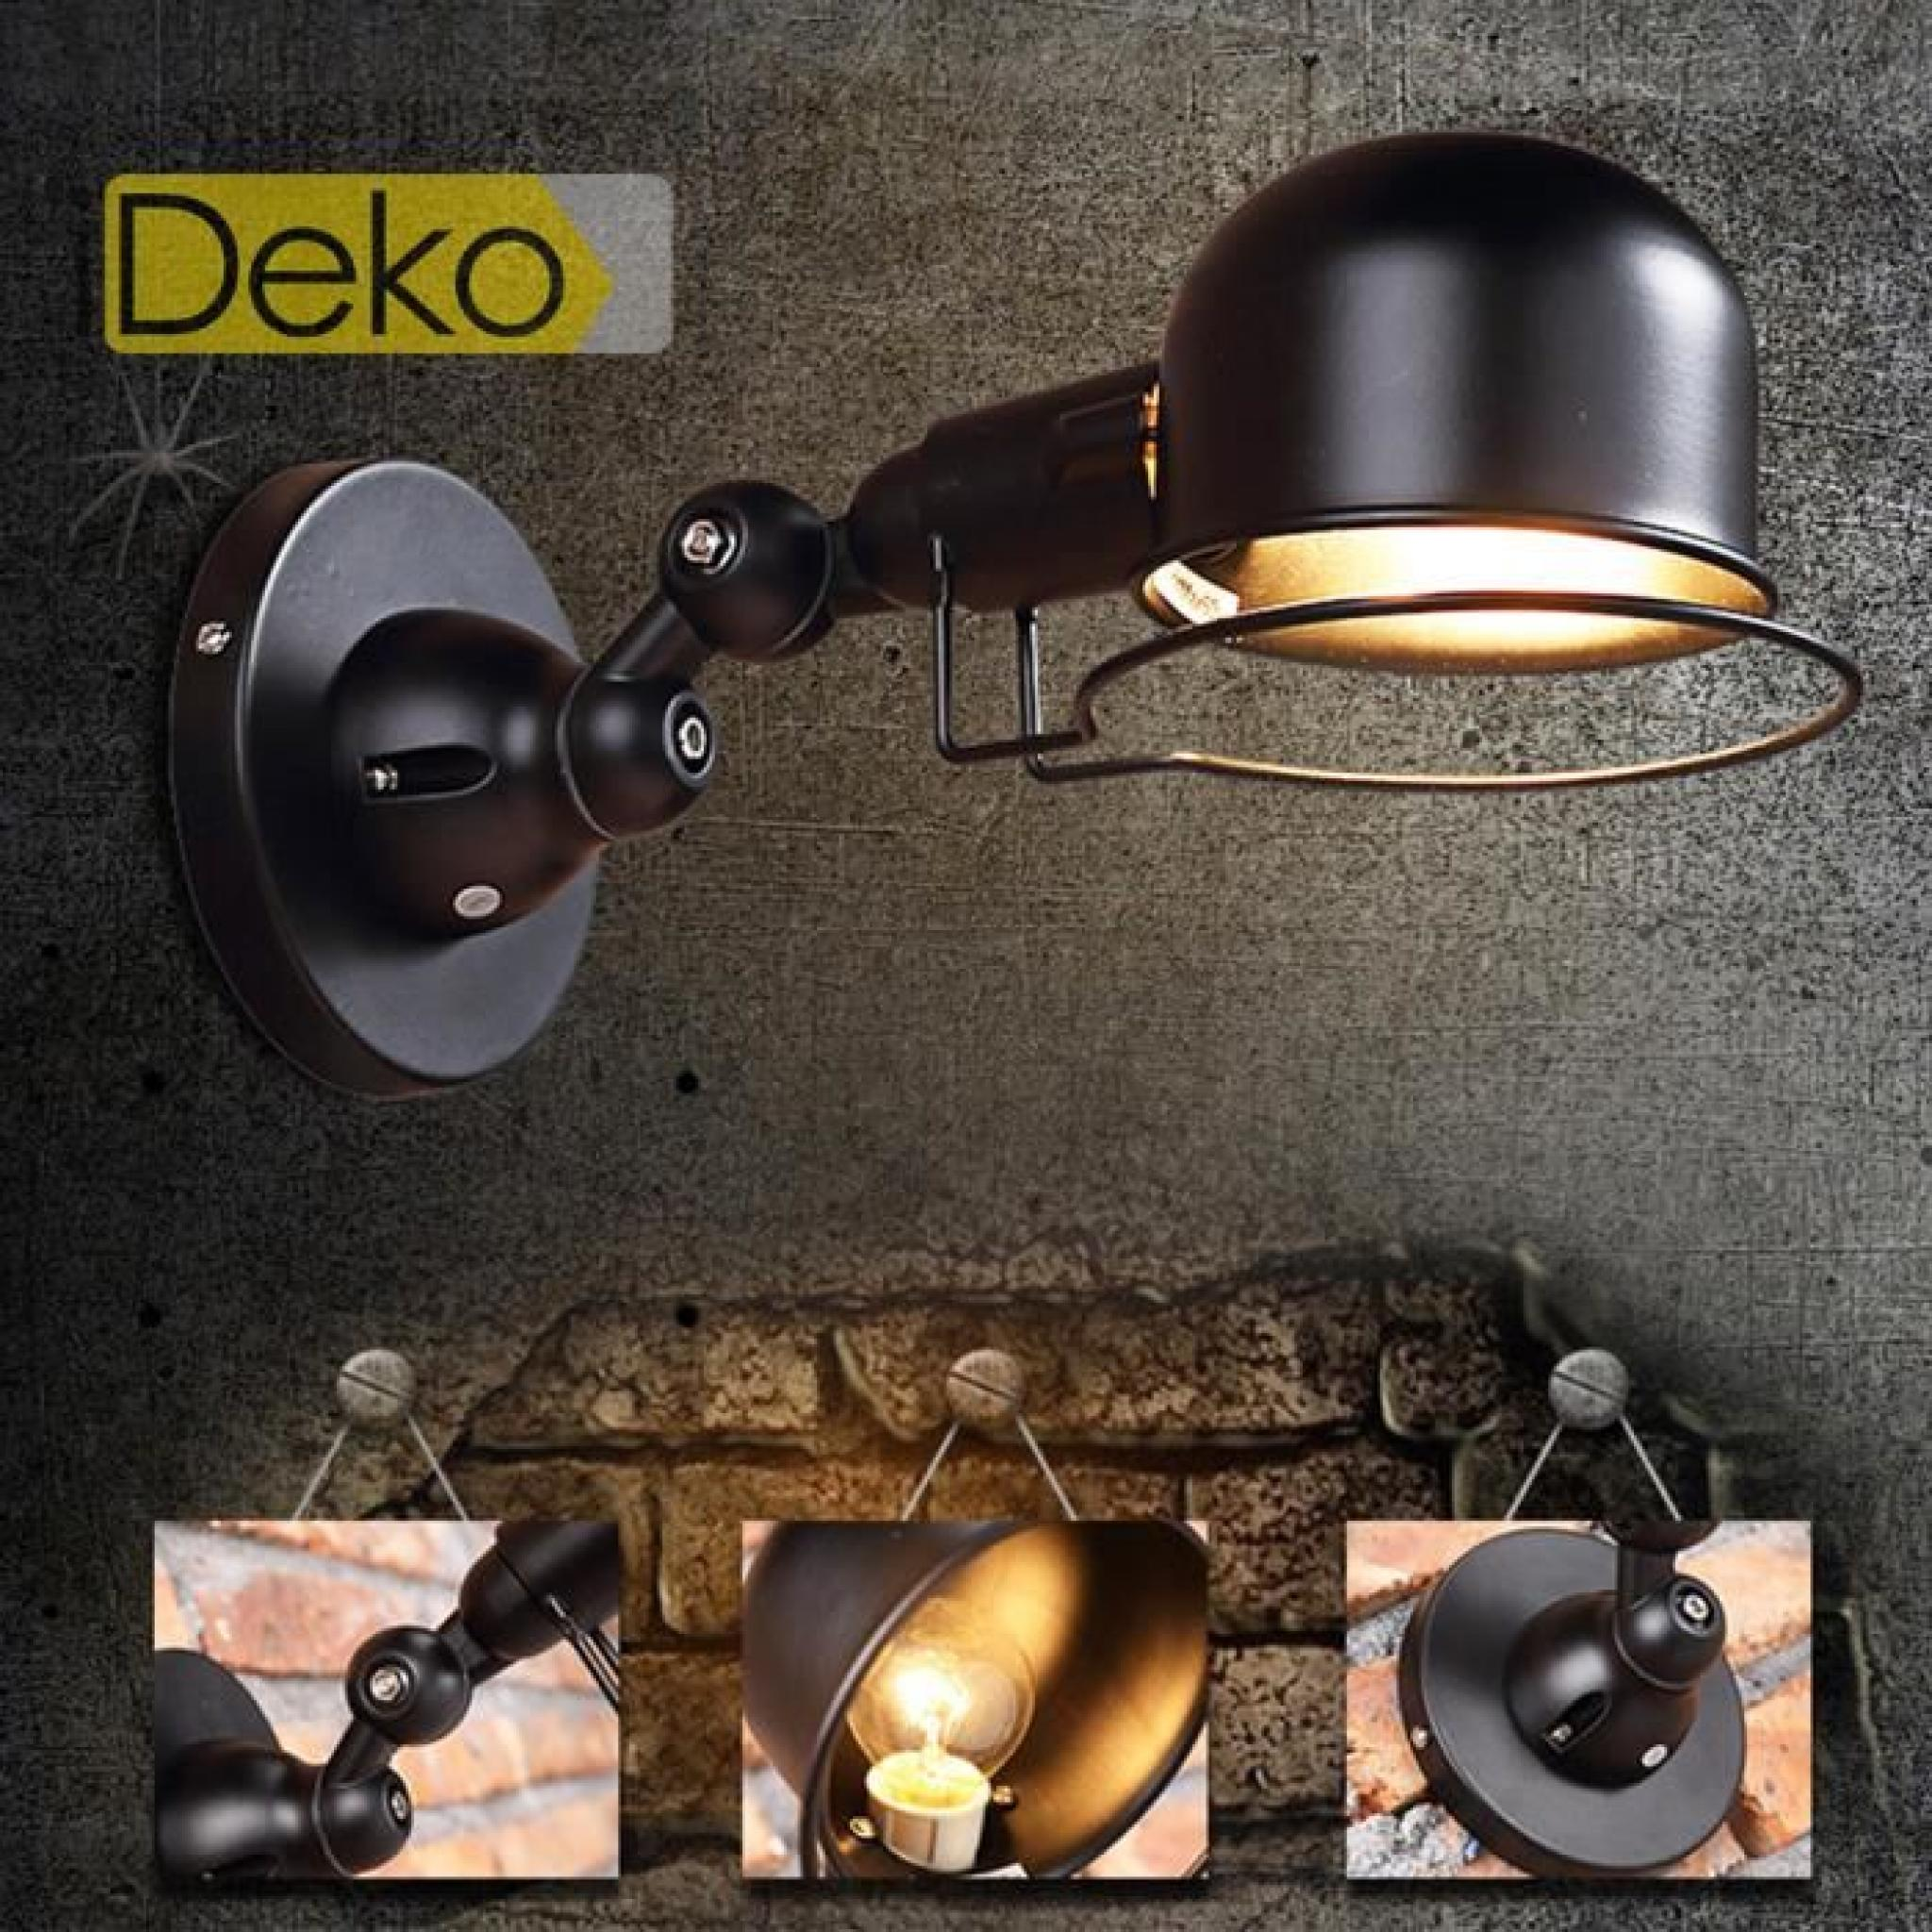 ideko lampe de salon art design antique unique industriel cam ra en fer bronz lampe projecteur. Black Bedroom Furniture Sets. Home Design Ideas